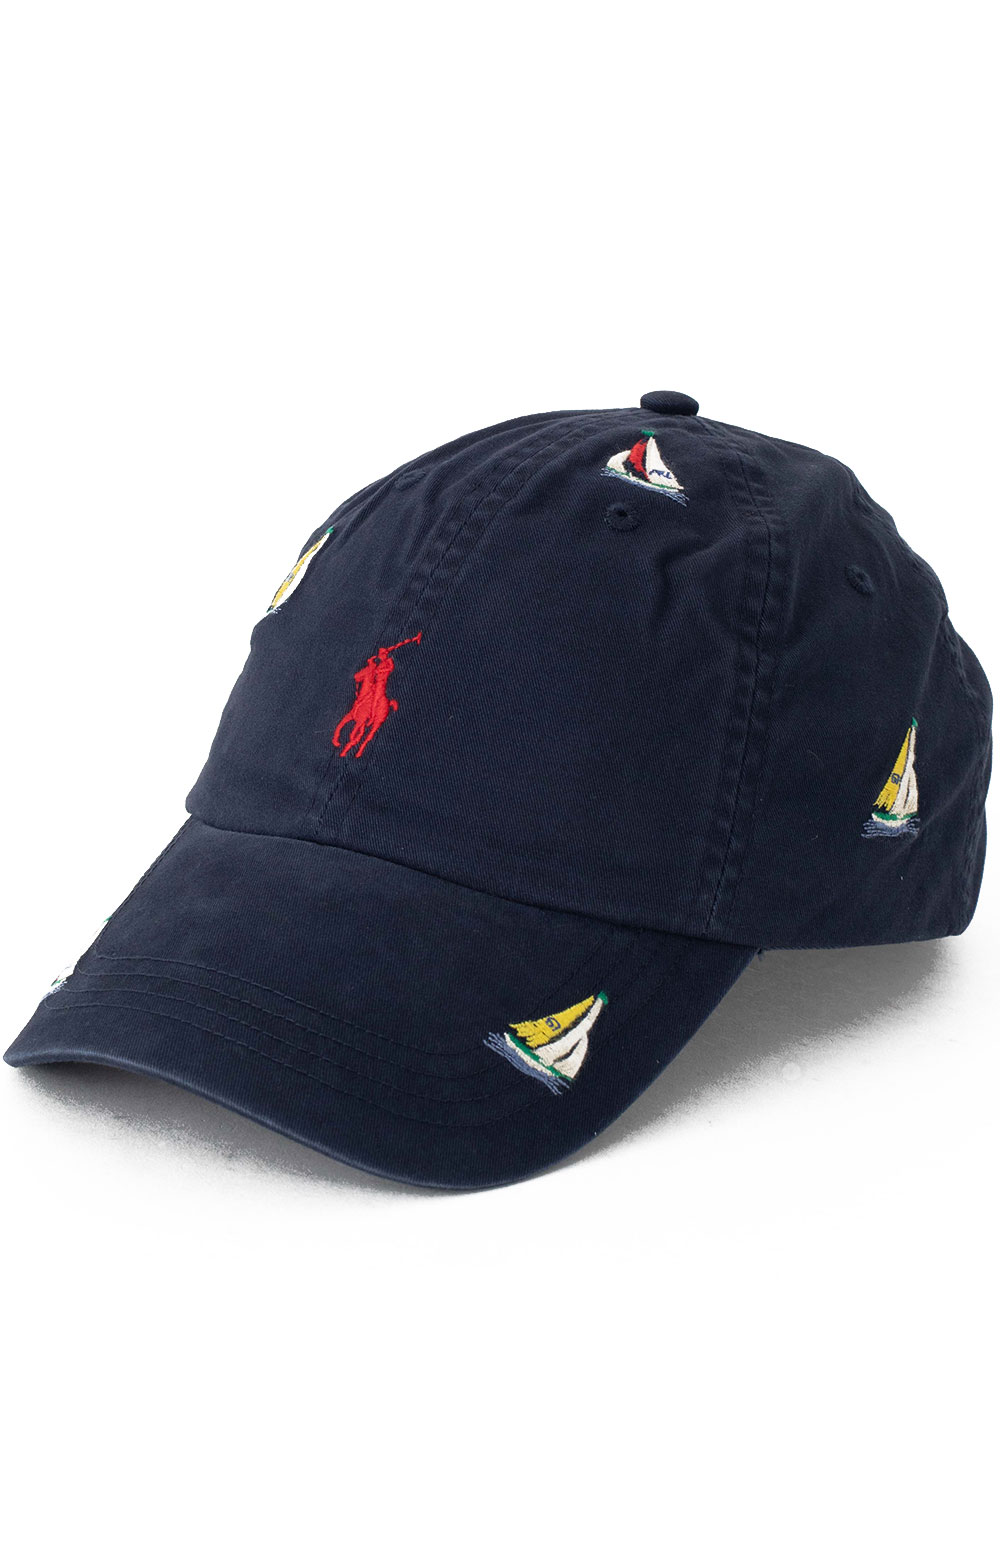 Embroidered Sailboat Ball Cap - Navy